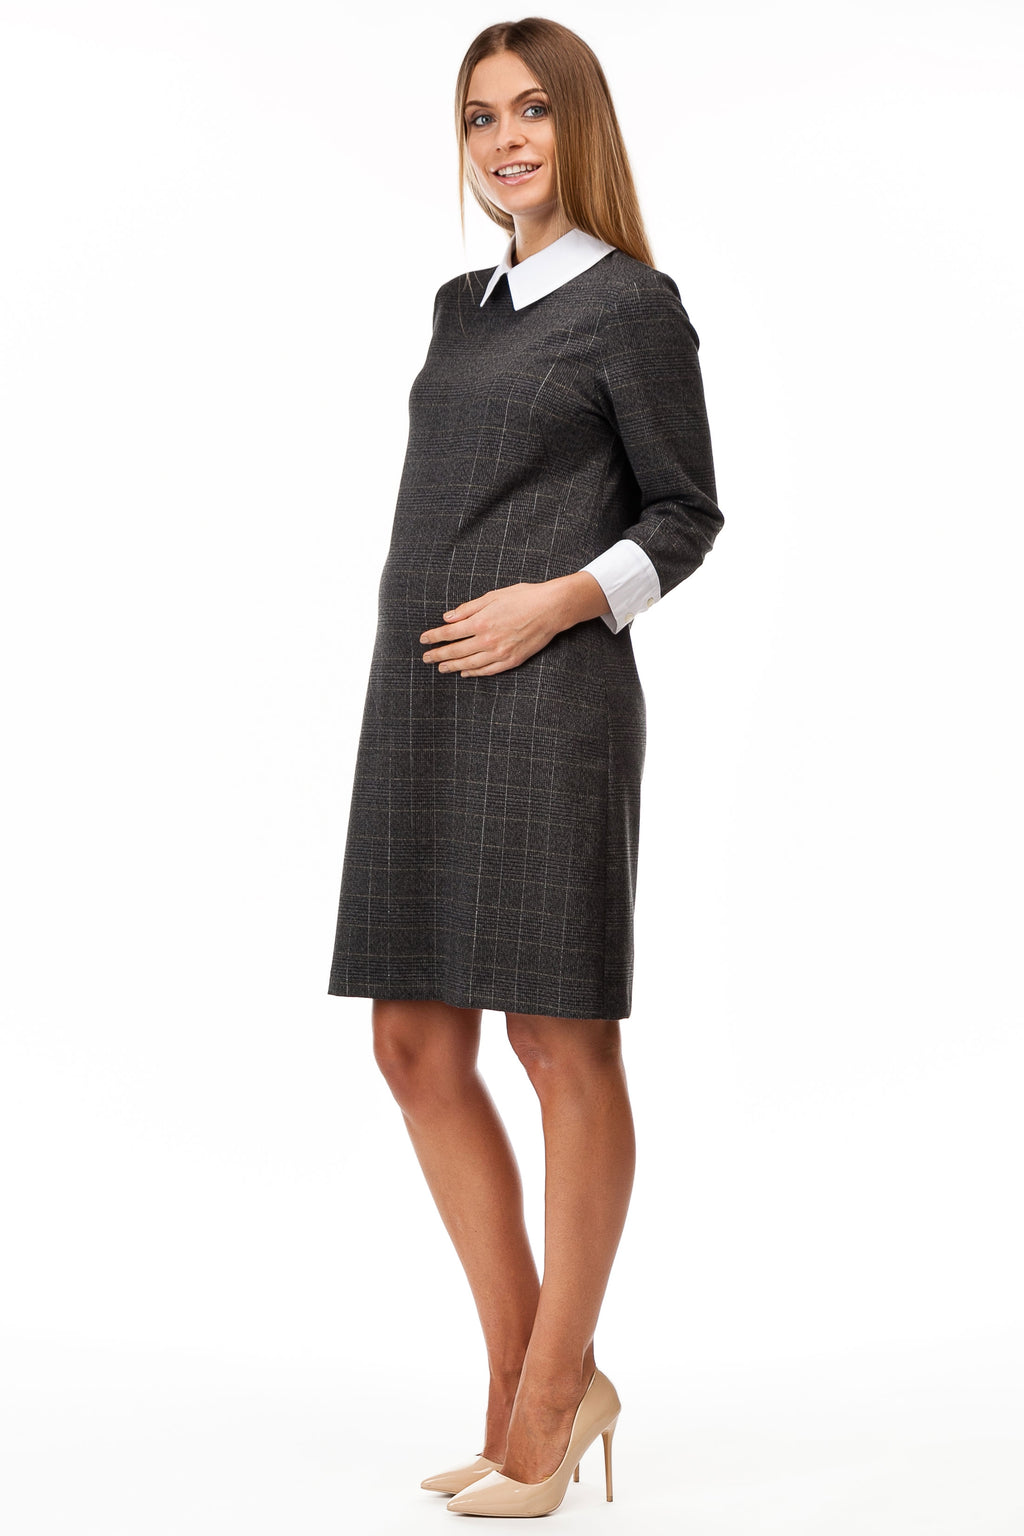 Pietro Brunelli Edinburgh Maternity Shift Dress - Seven Women Maternity